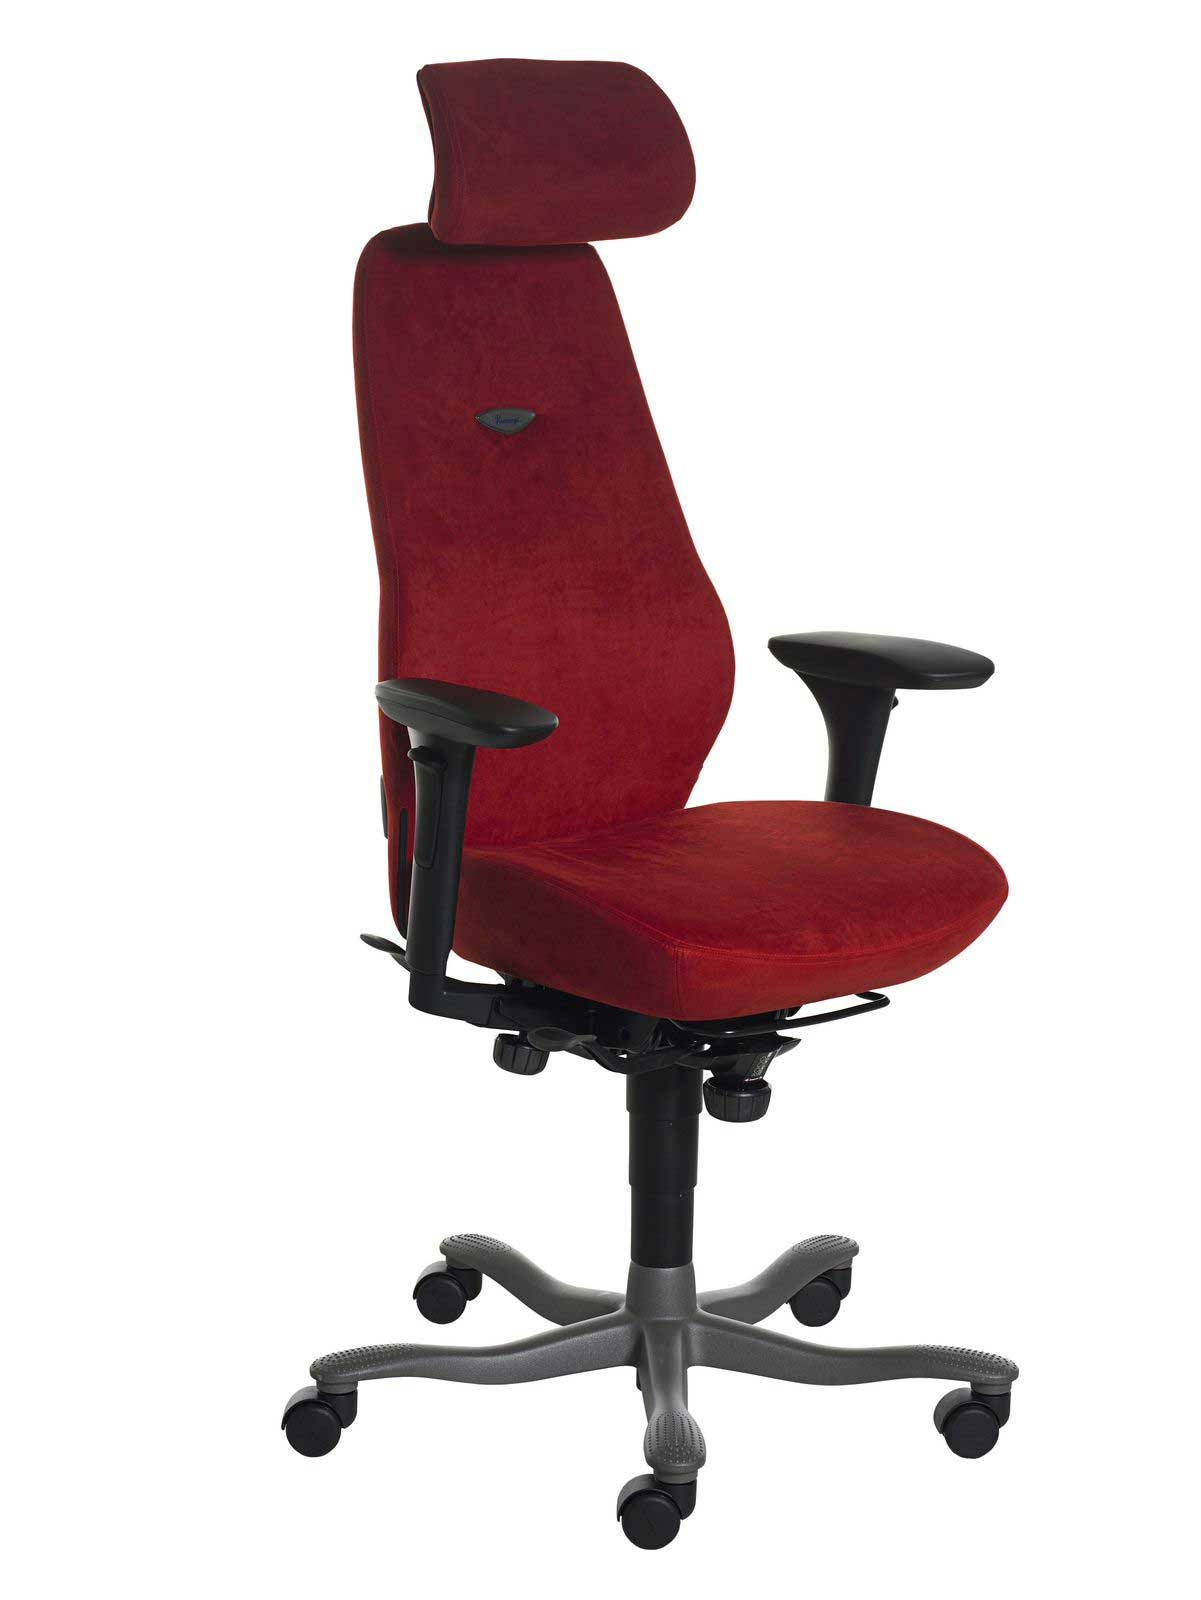 Ergonomic Chairs For Home Ergonomic Desk Chairs For Office And Home